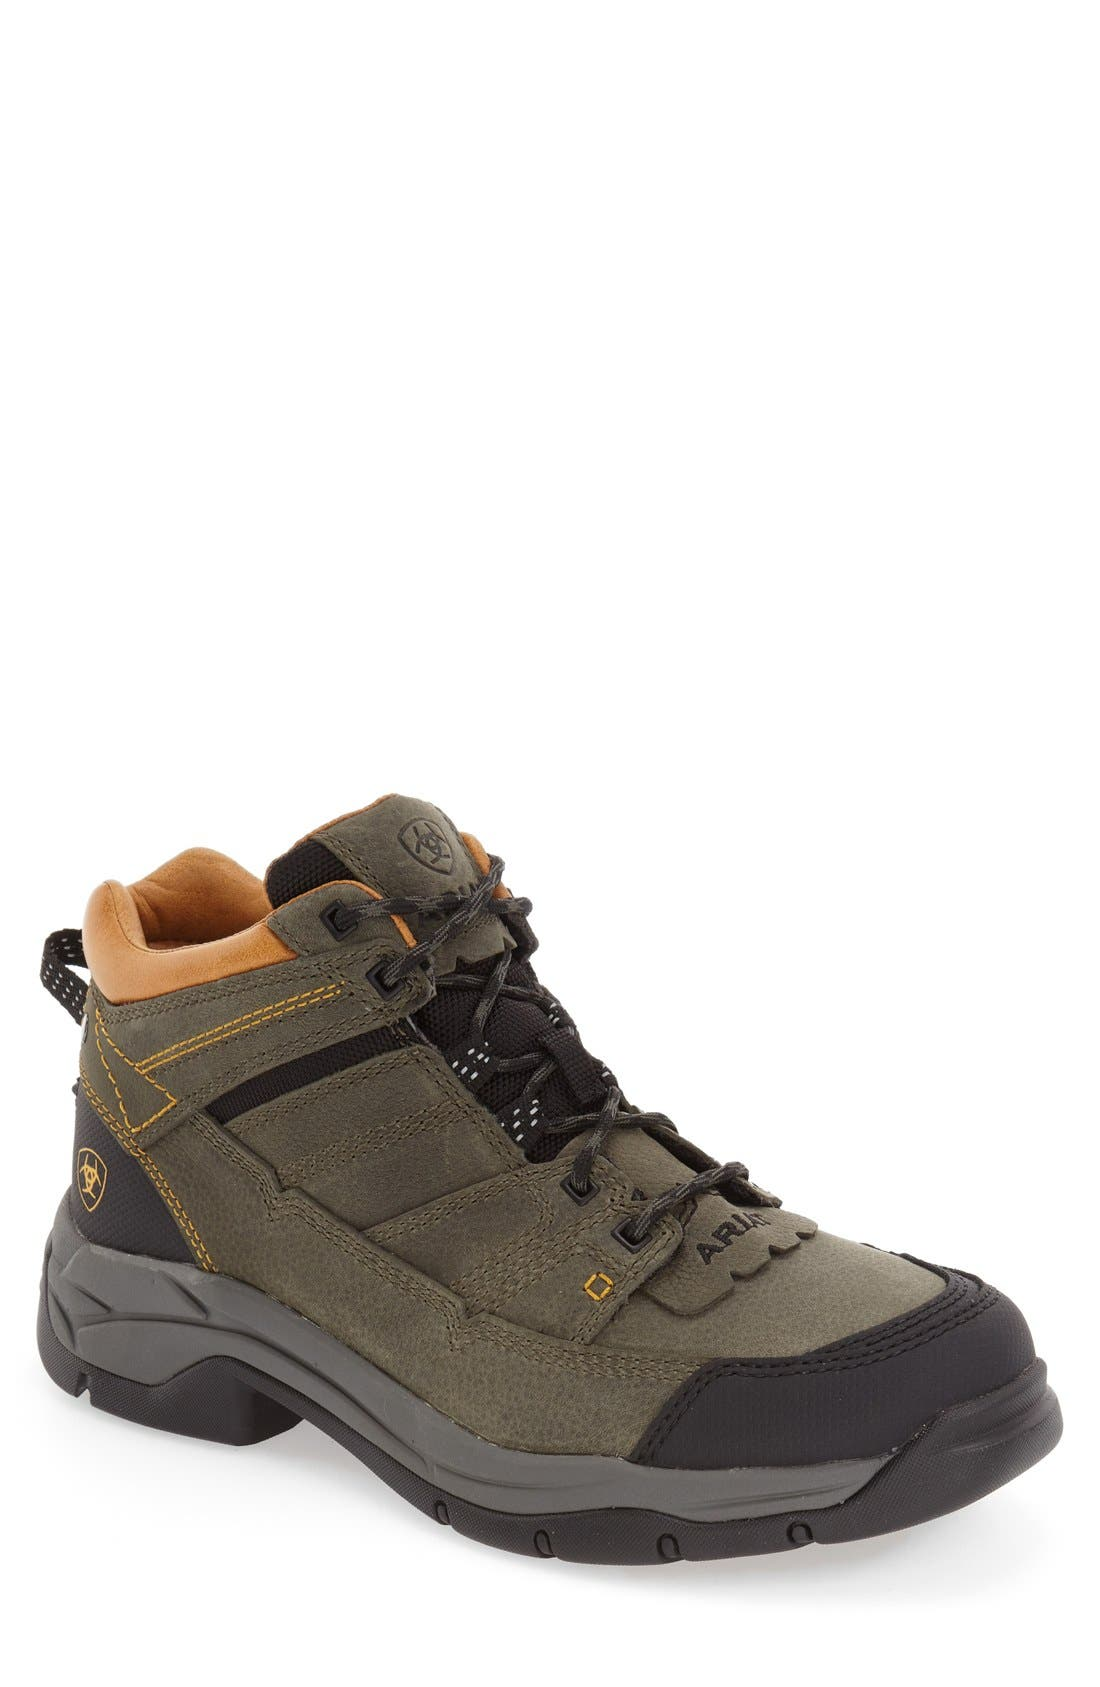 'Terrain Pro' Waterproof Hiking Boot,                         Main,                         color, Shadow Leather